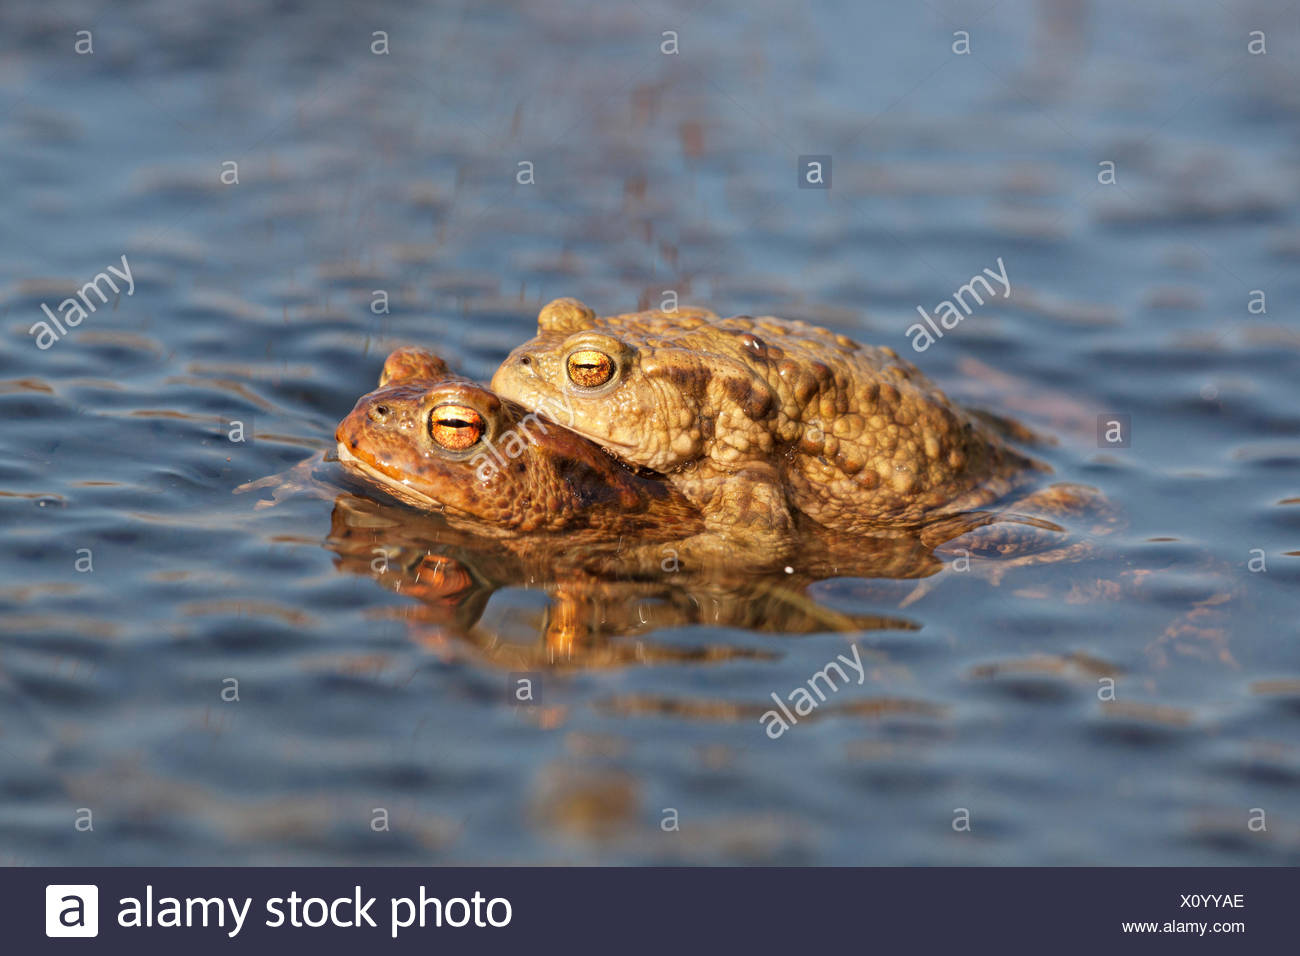 photo of a pair of common toads between frog spawn - Stock Image